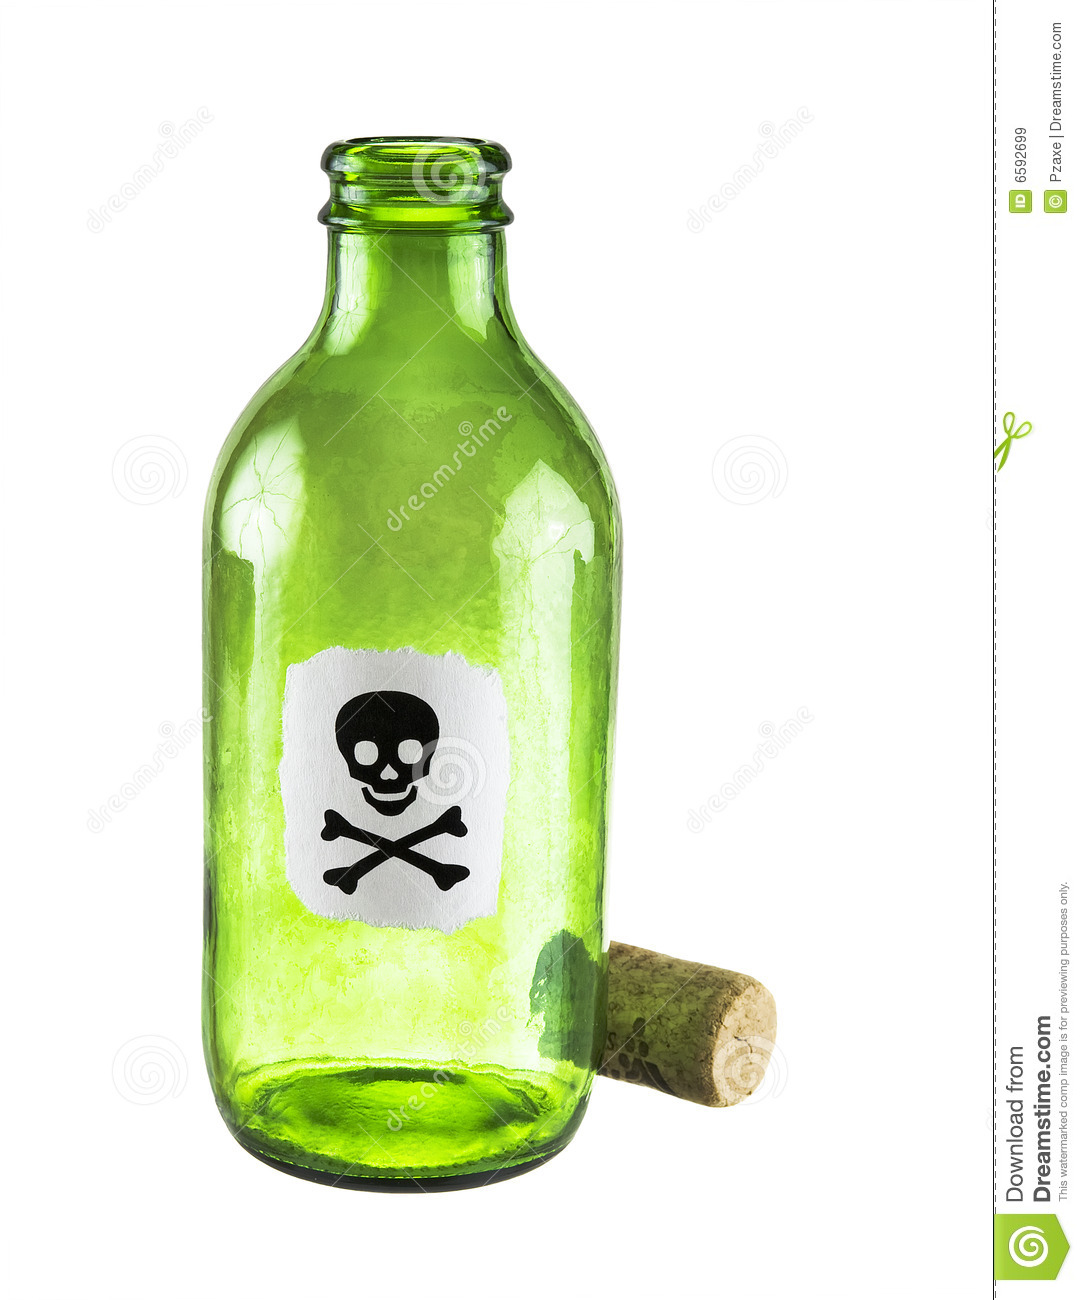 Poison Bottle On A White Royalty Free Stock Images - Image: 6592699